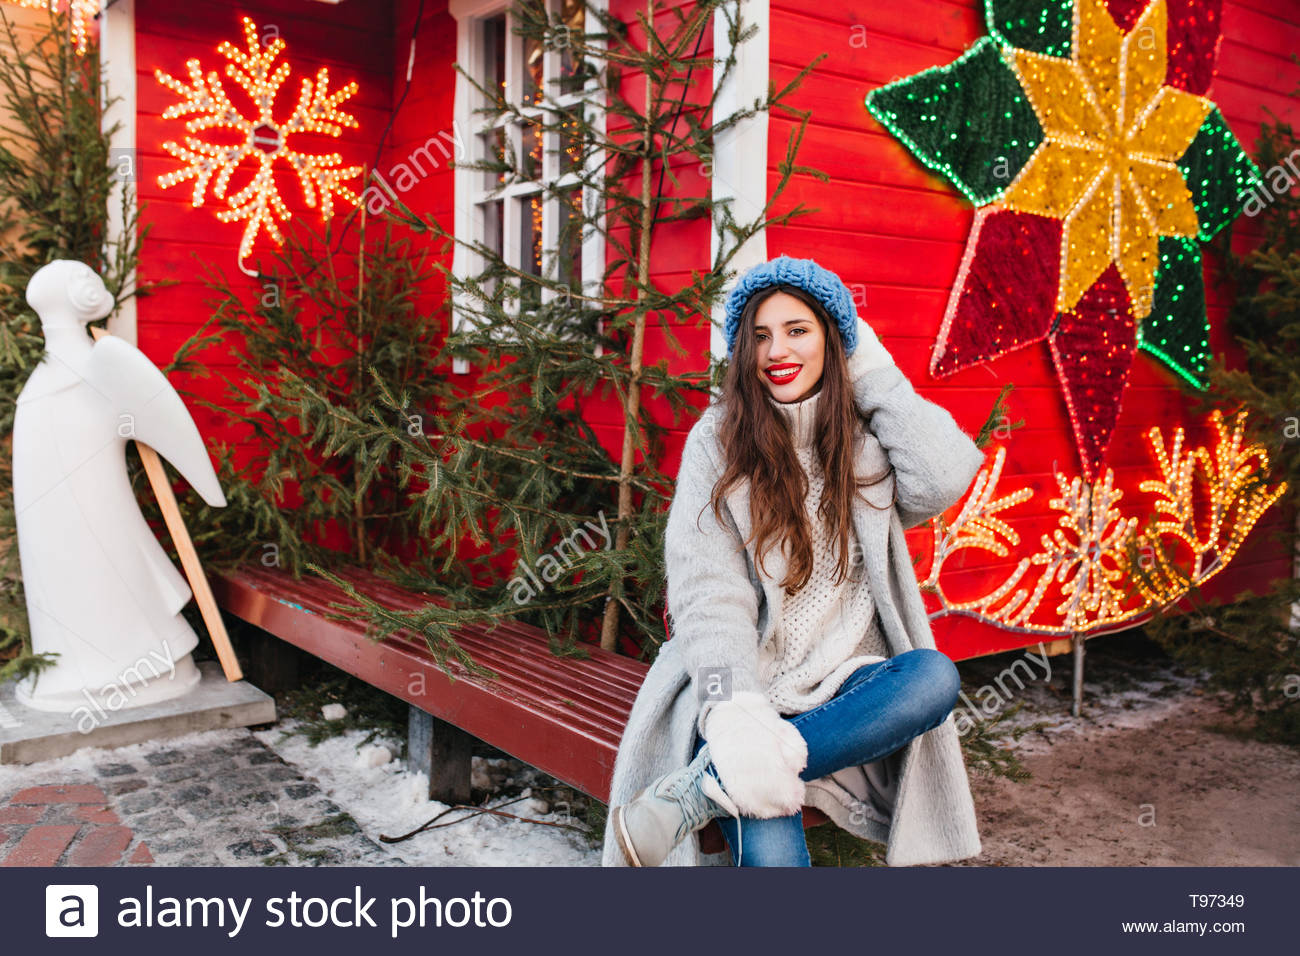 Long-haired female model sits on wooden bench near red house decorated for christmas. Attractive brunette girl posing after new year holiday beside green trees and angel sculptures. - Stock Image